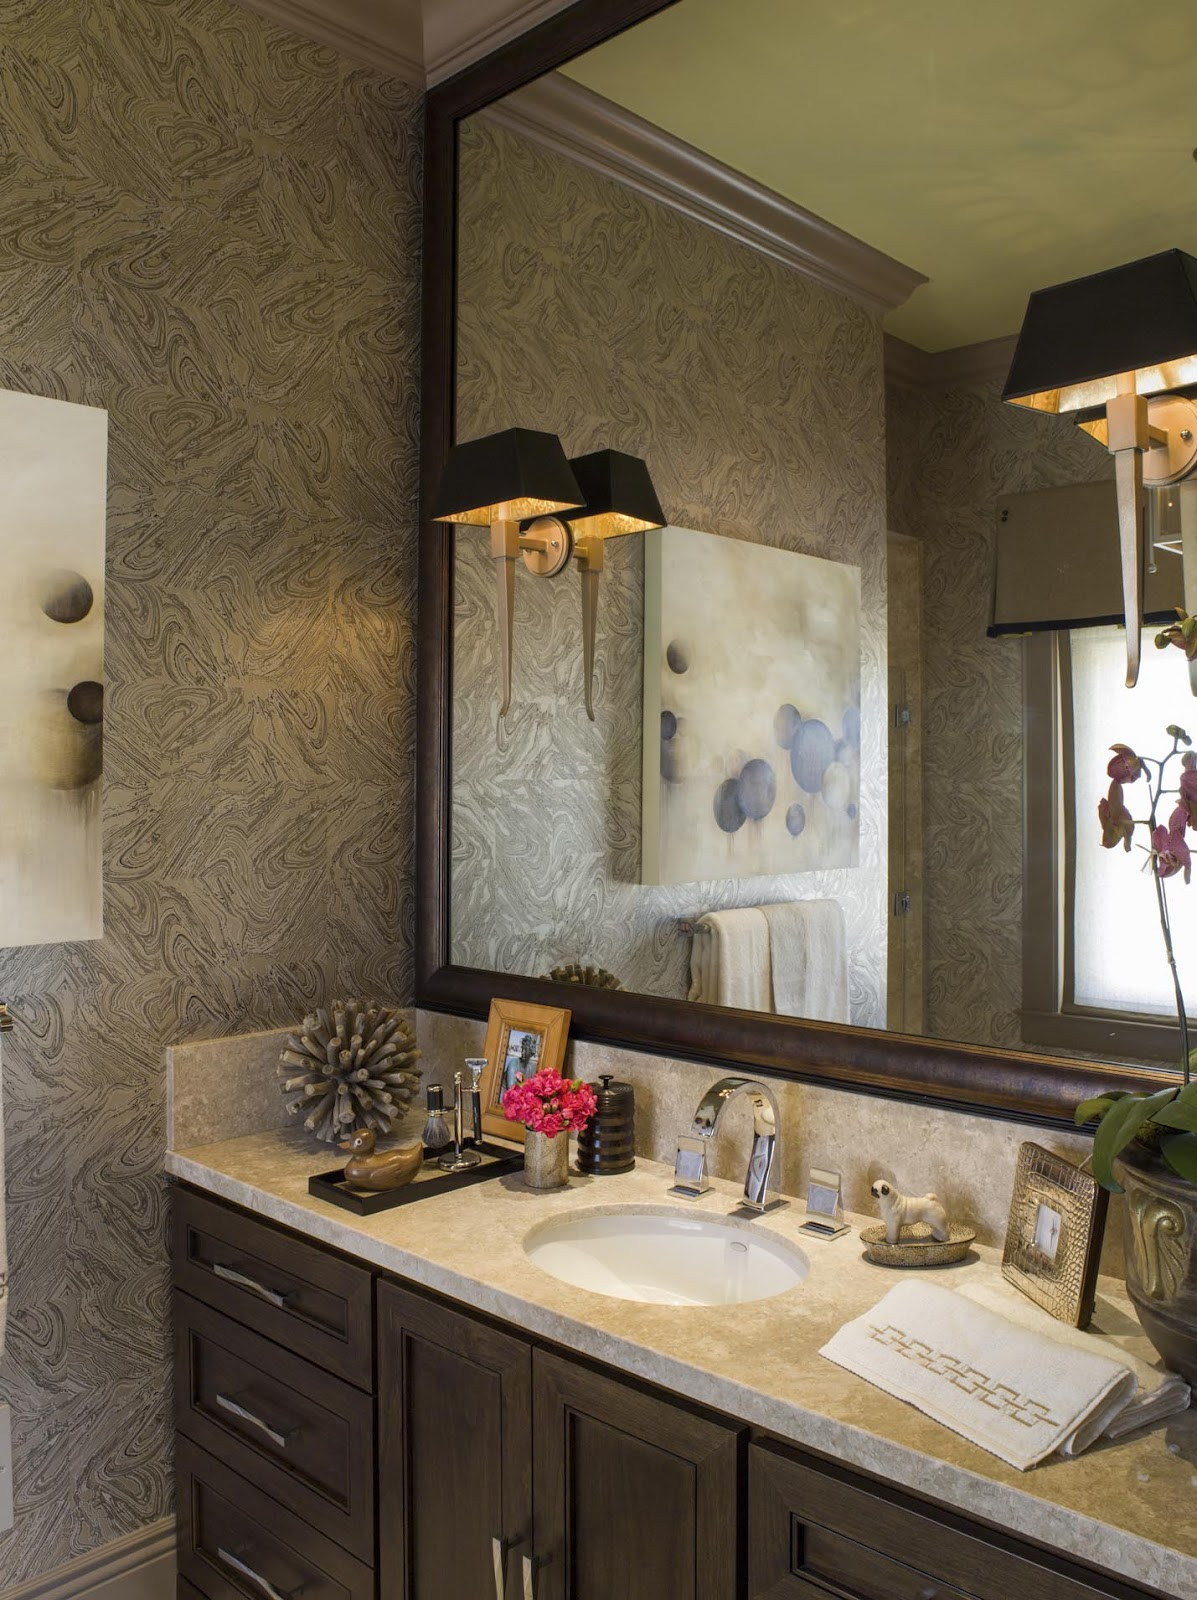 Bathroom wallpaper ideas bathroom wallpaper designs for Bathroom mirror ideas